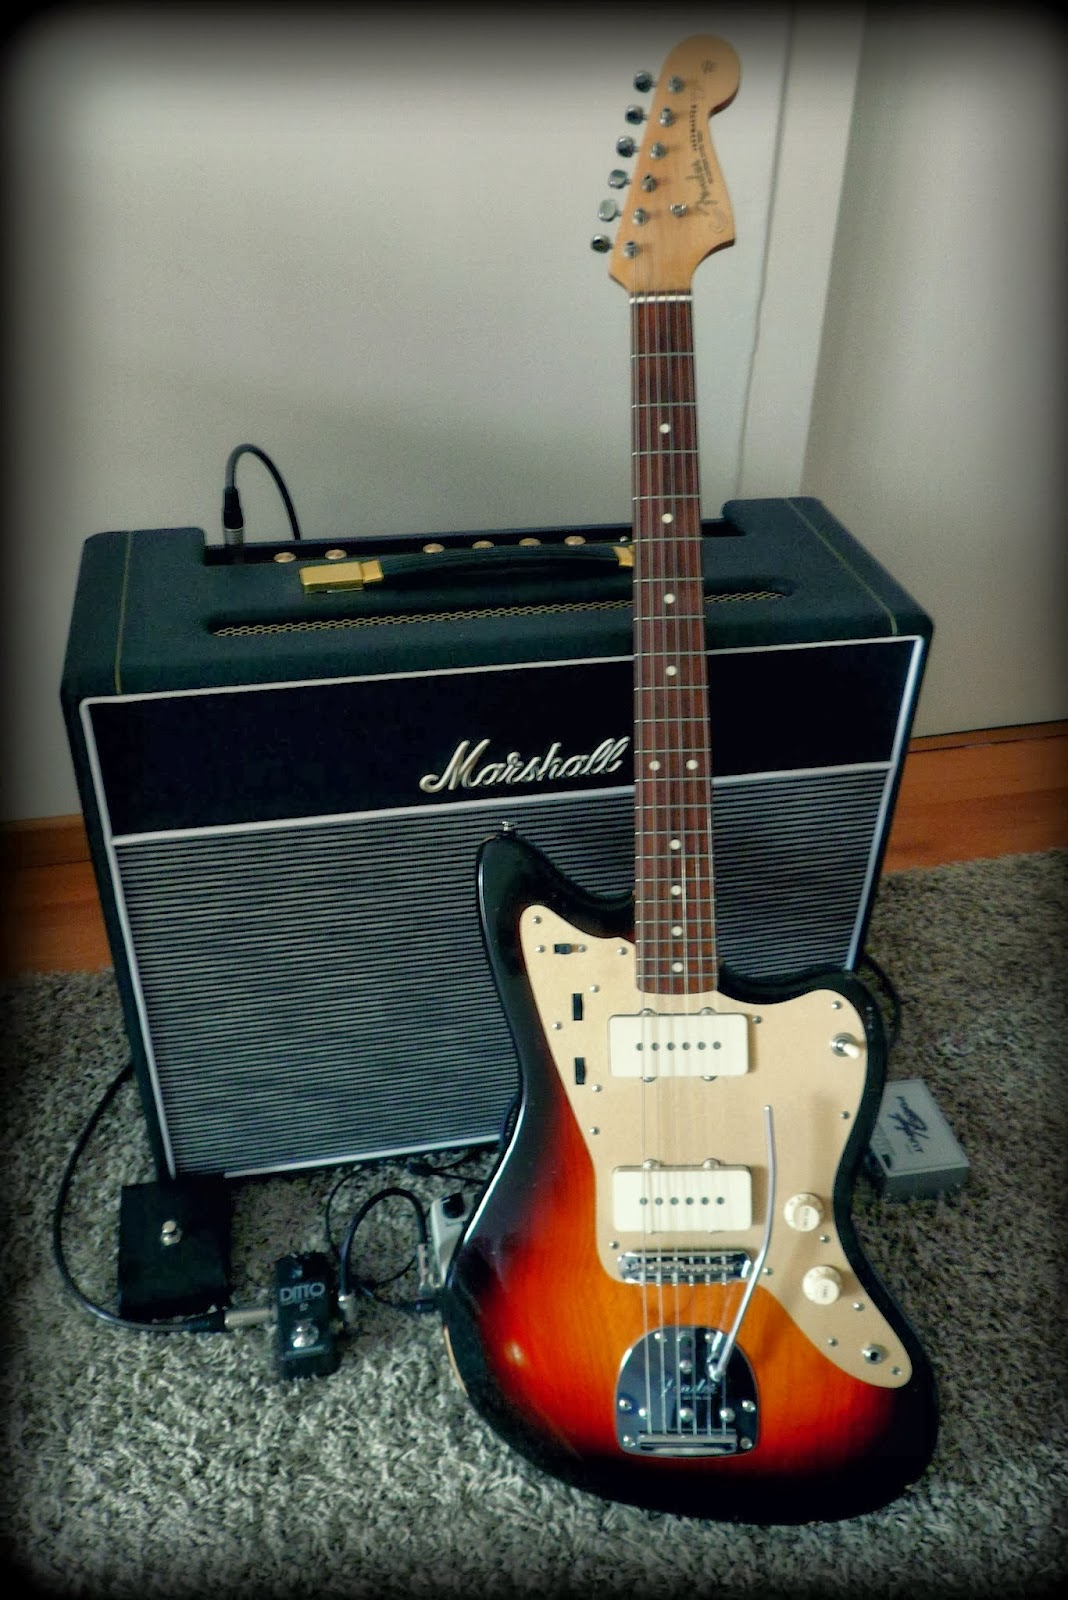 supreme vintage tone guitars jazzmaster neck reliced custom made gold anodized pickguard from theworkoffire seymour duncan antiquities ii pickups vintage cloth wiring